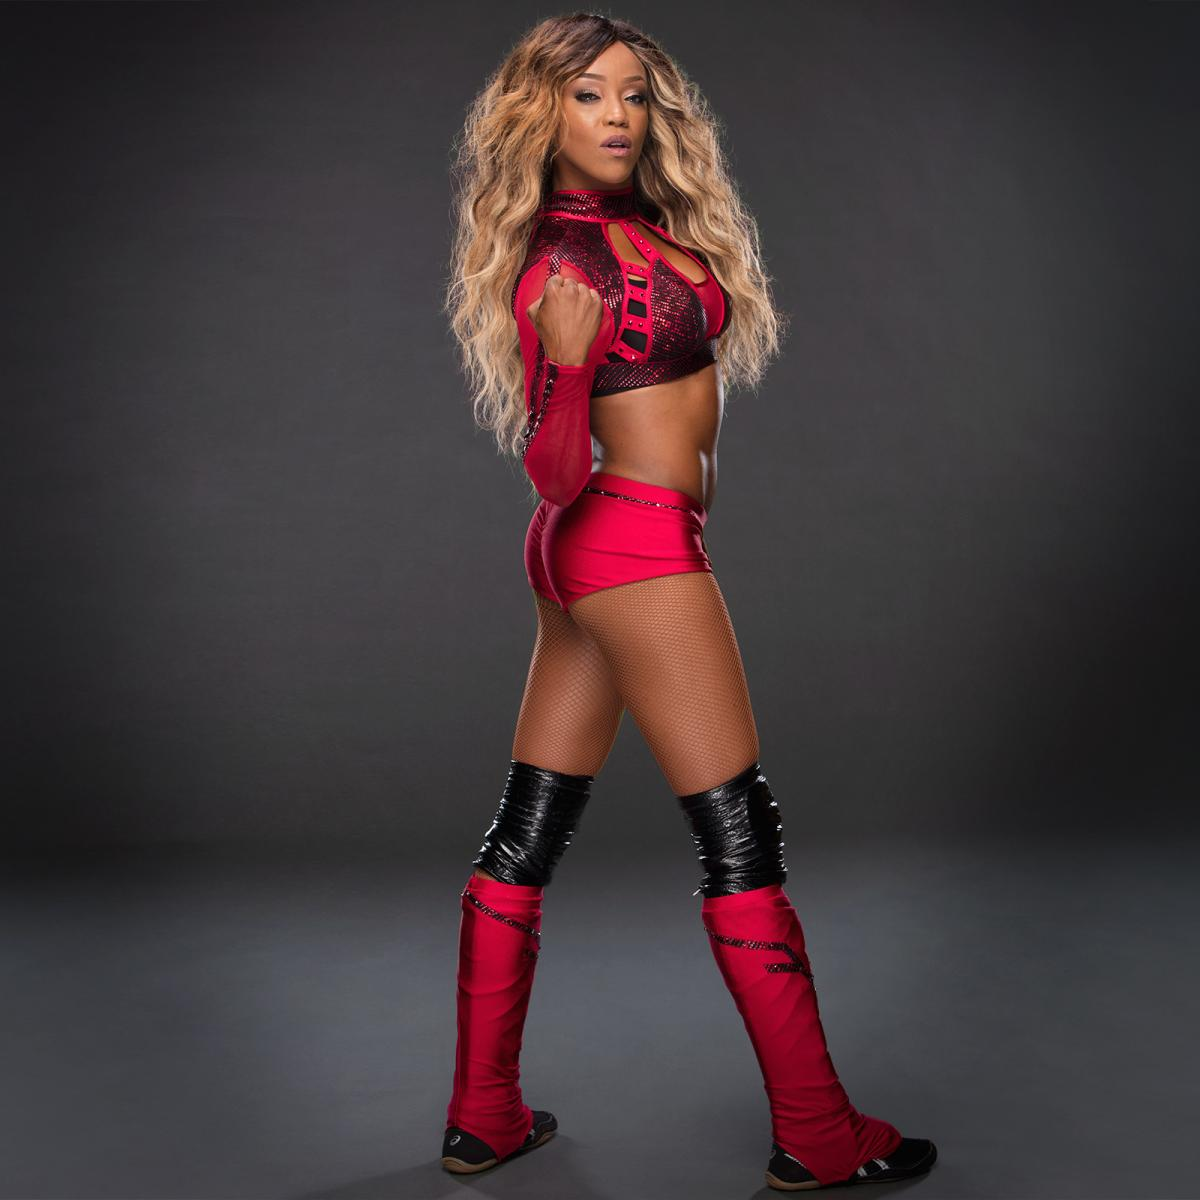 Twitter WWE Alicia Fox nudes (85 photo), Tits, Cleavage, Instagram, cameltoe 2006